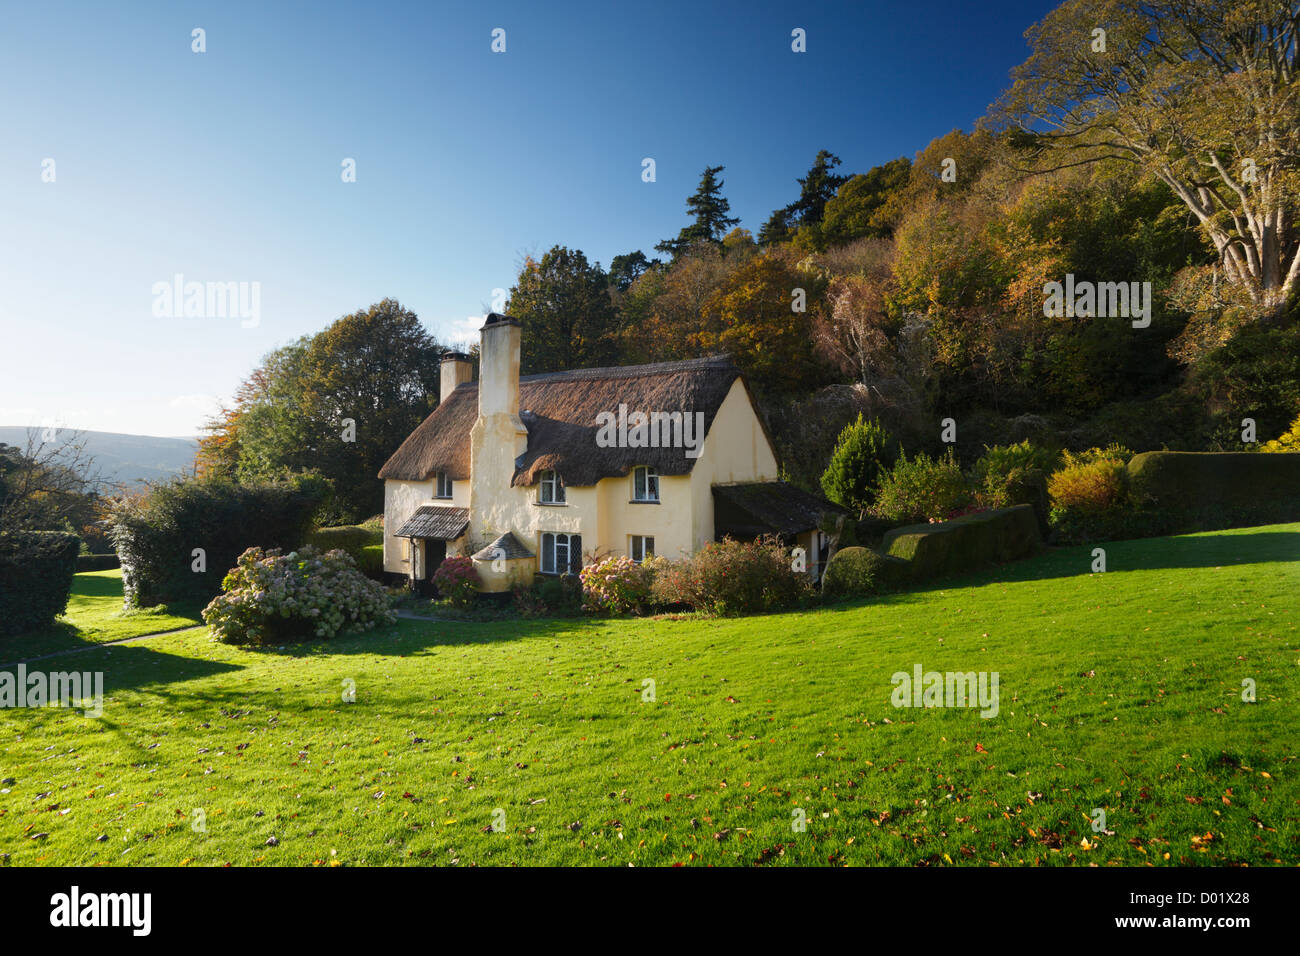 Thatched Cottage in Selworthy Village on The Holnicote Estate. Exmoor National Park. Somerset. England. UK. - Stock Image